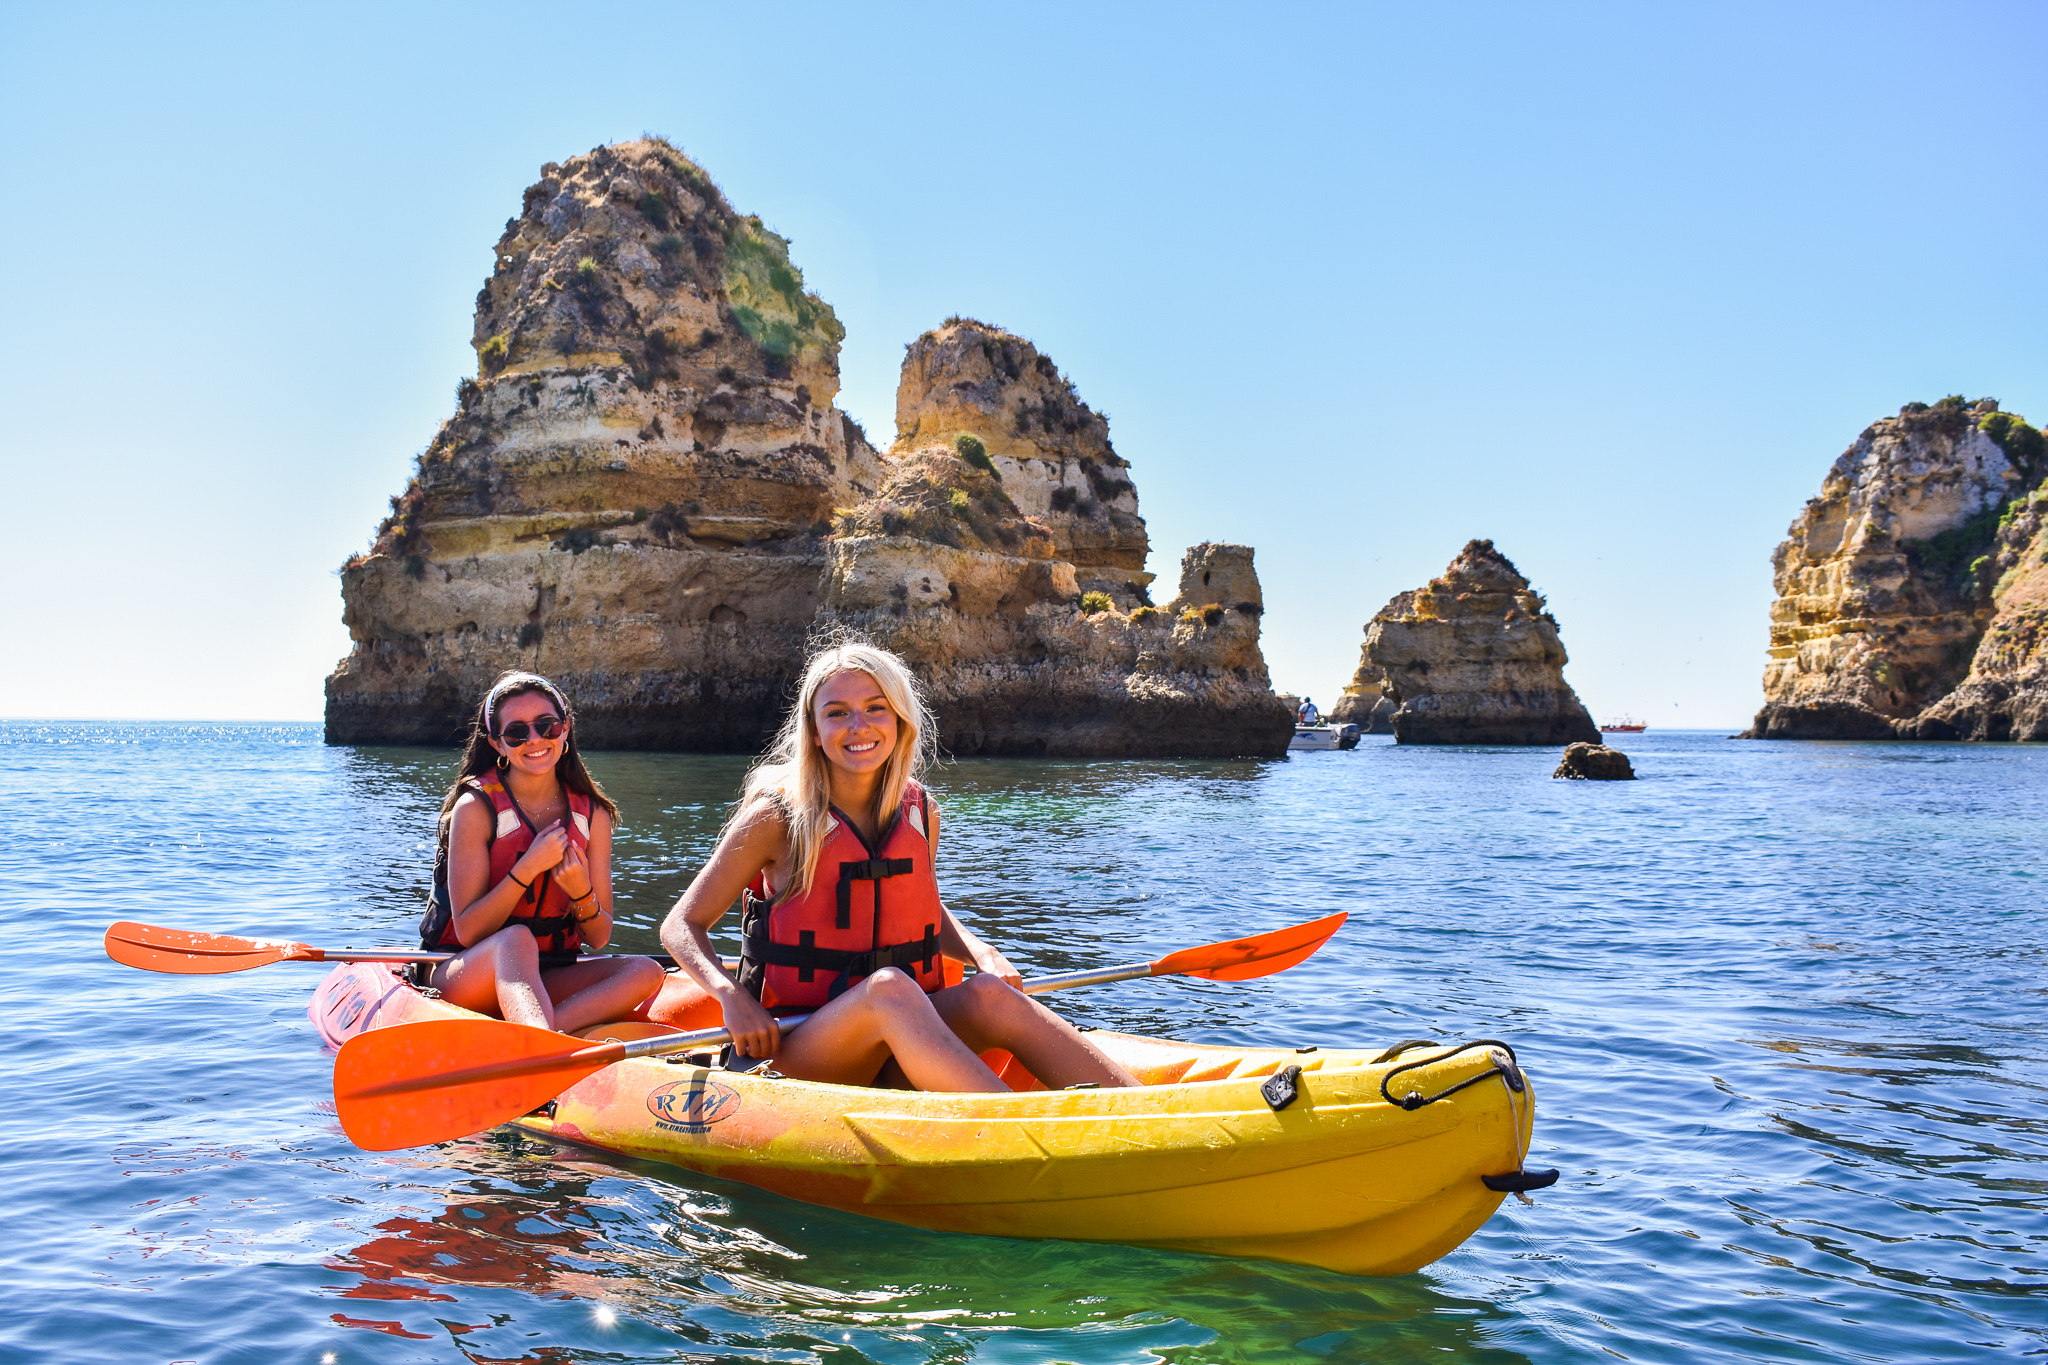 Summer Program - Adventure/Trips   Travel For Teens: Europe for Older Teens - Spain and Portugal